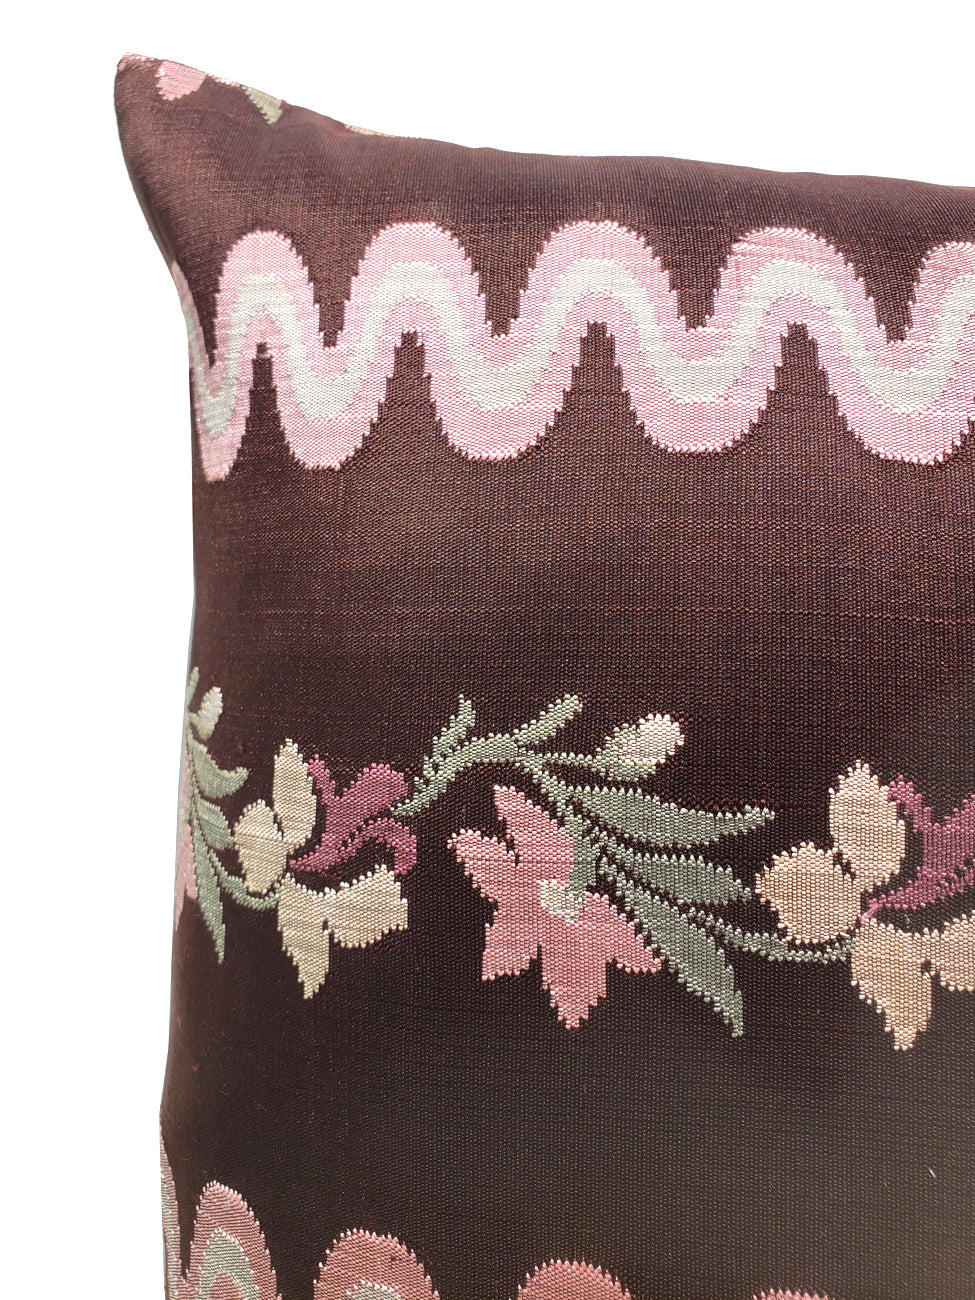 Burmese Silk Pillow Eggplant Pink